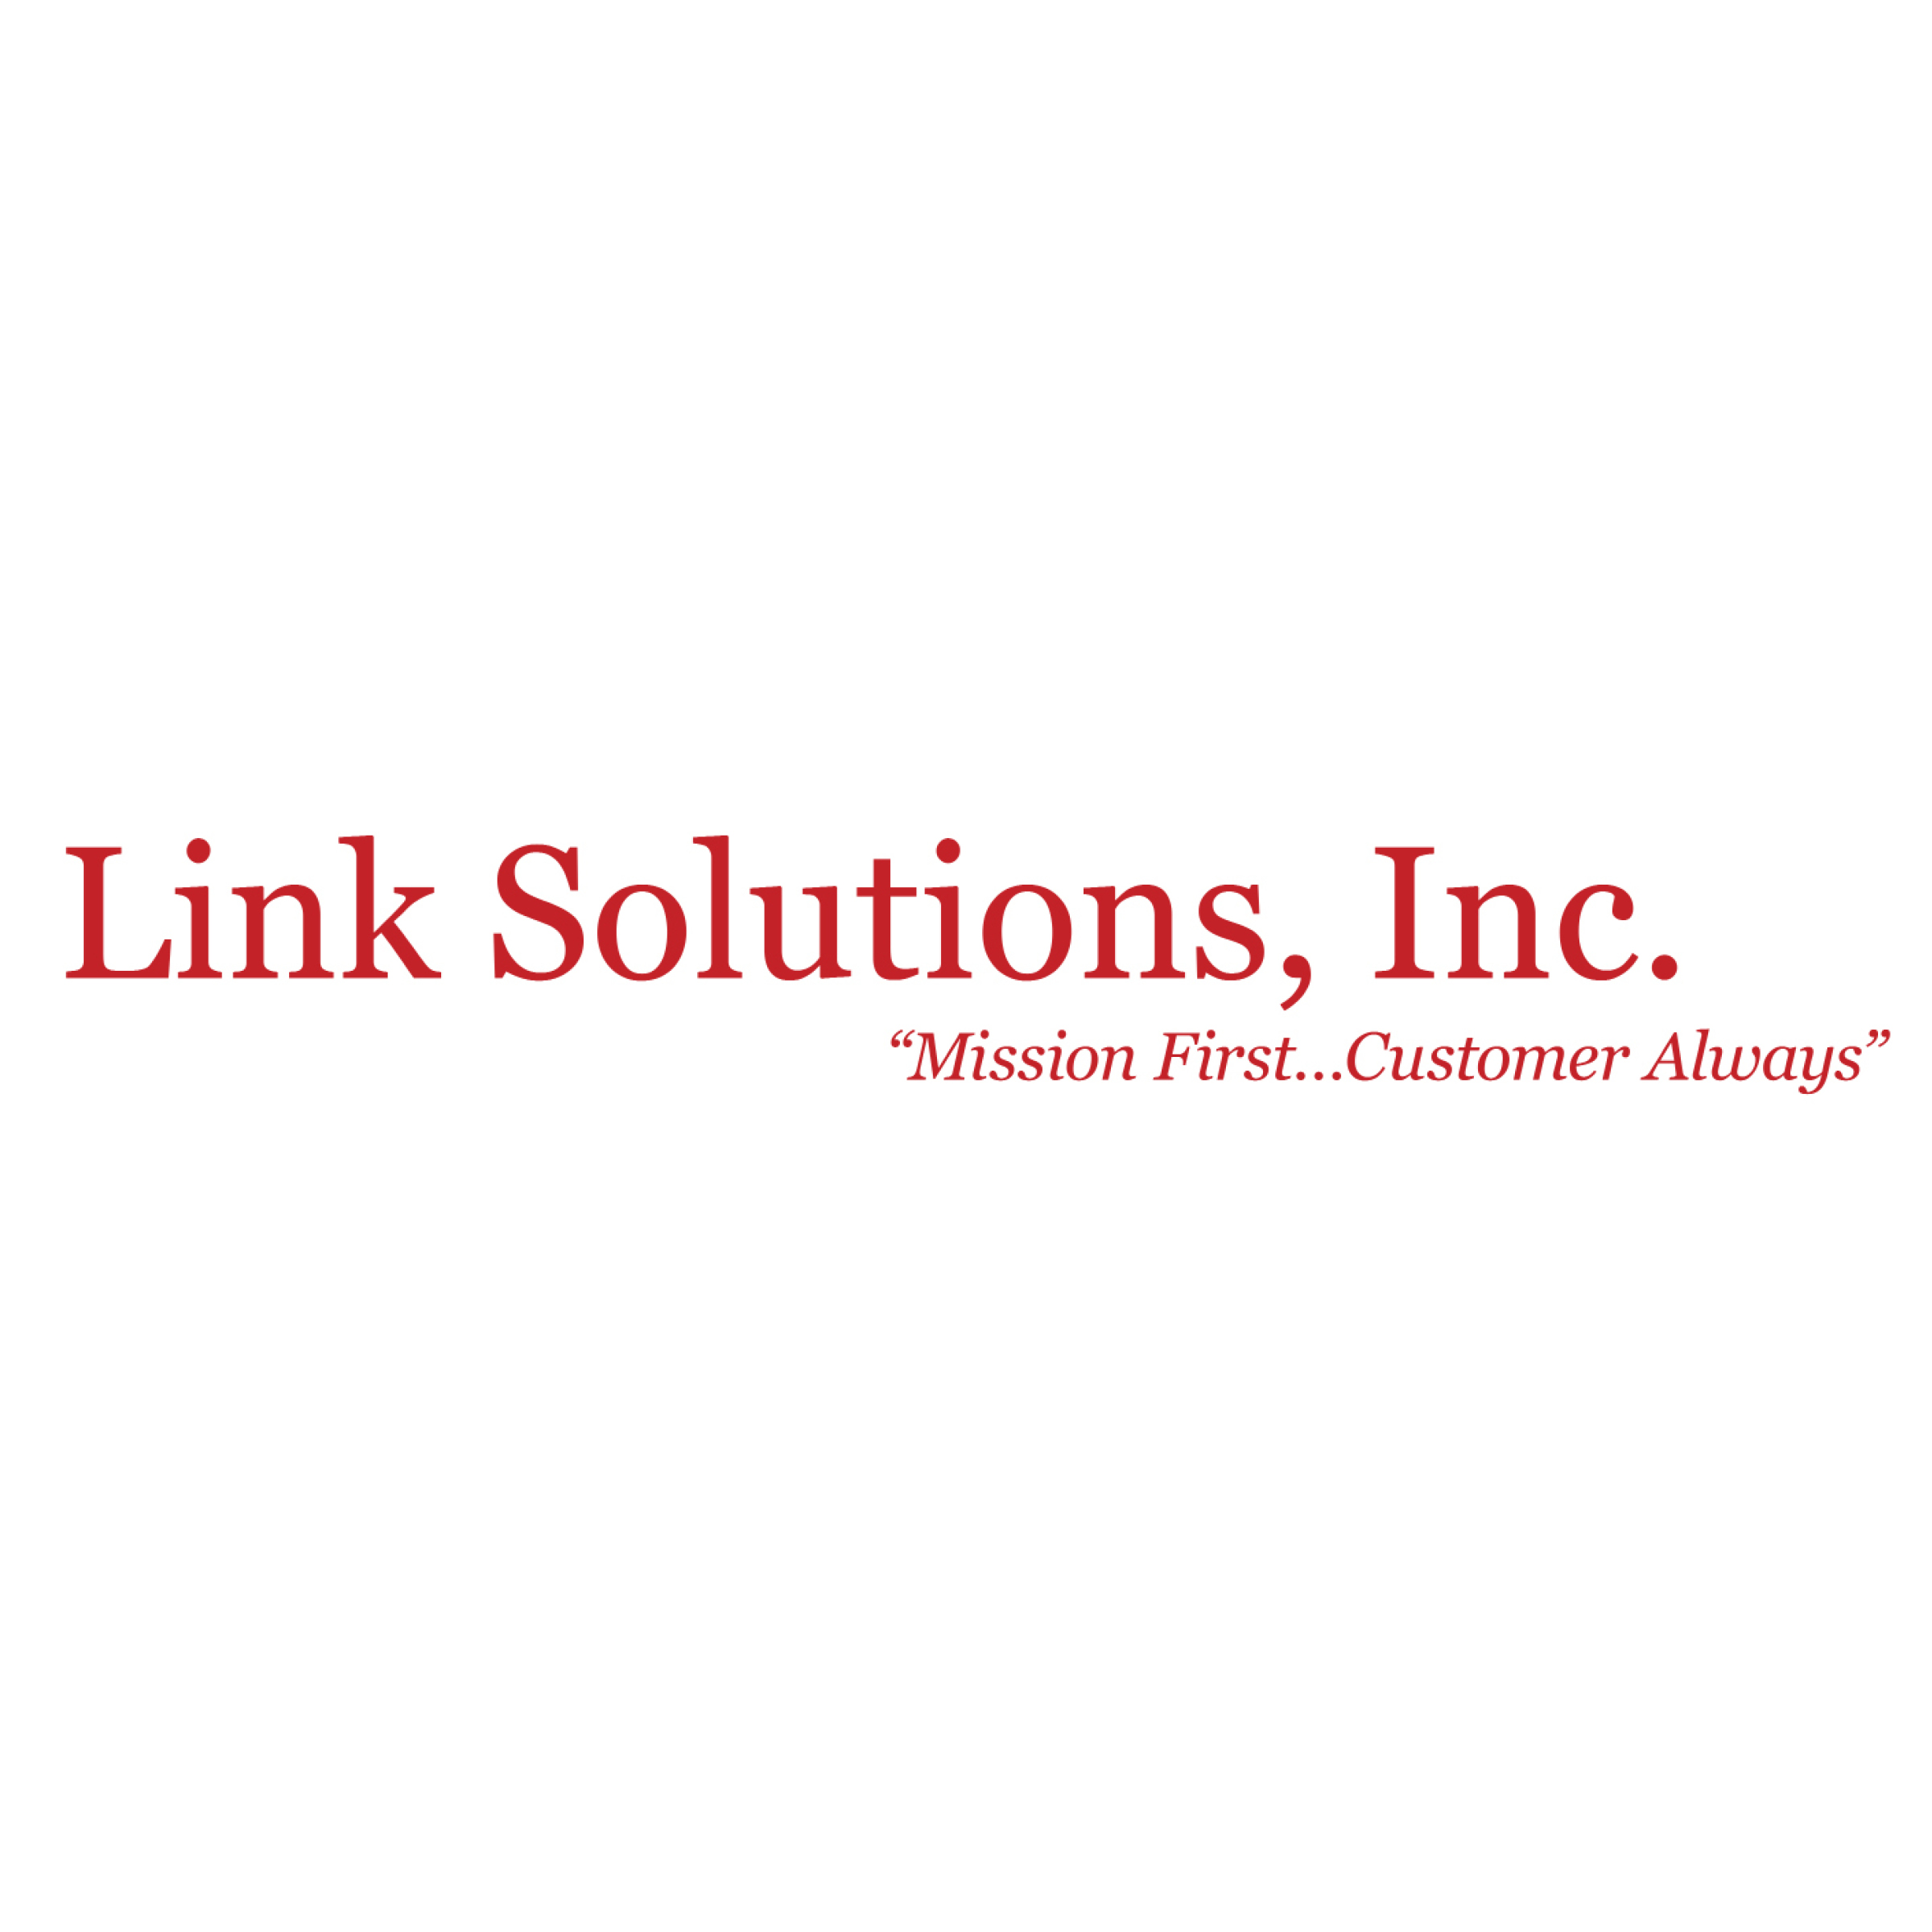 Link Solutions